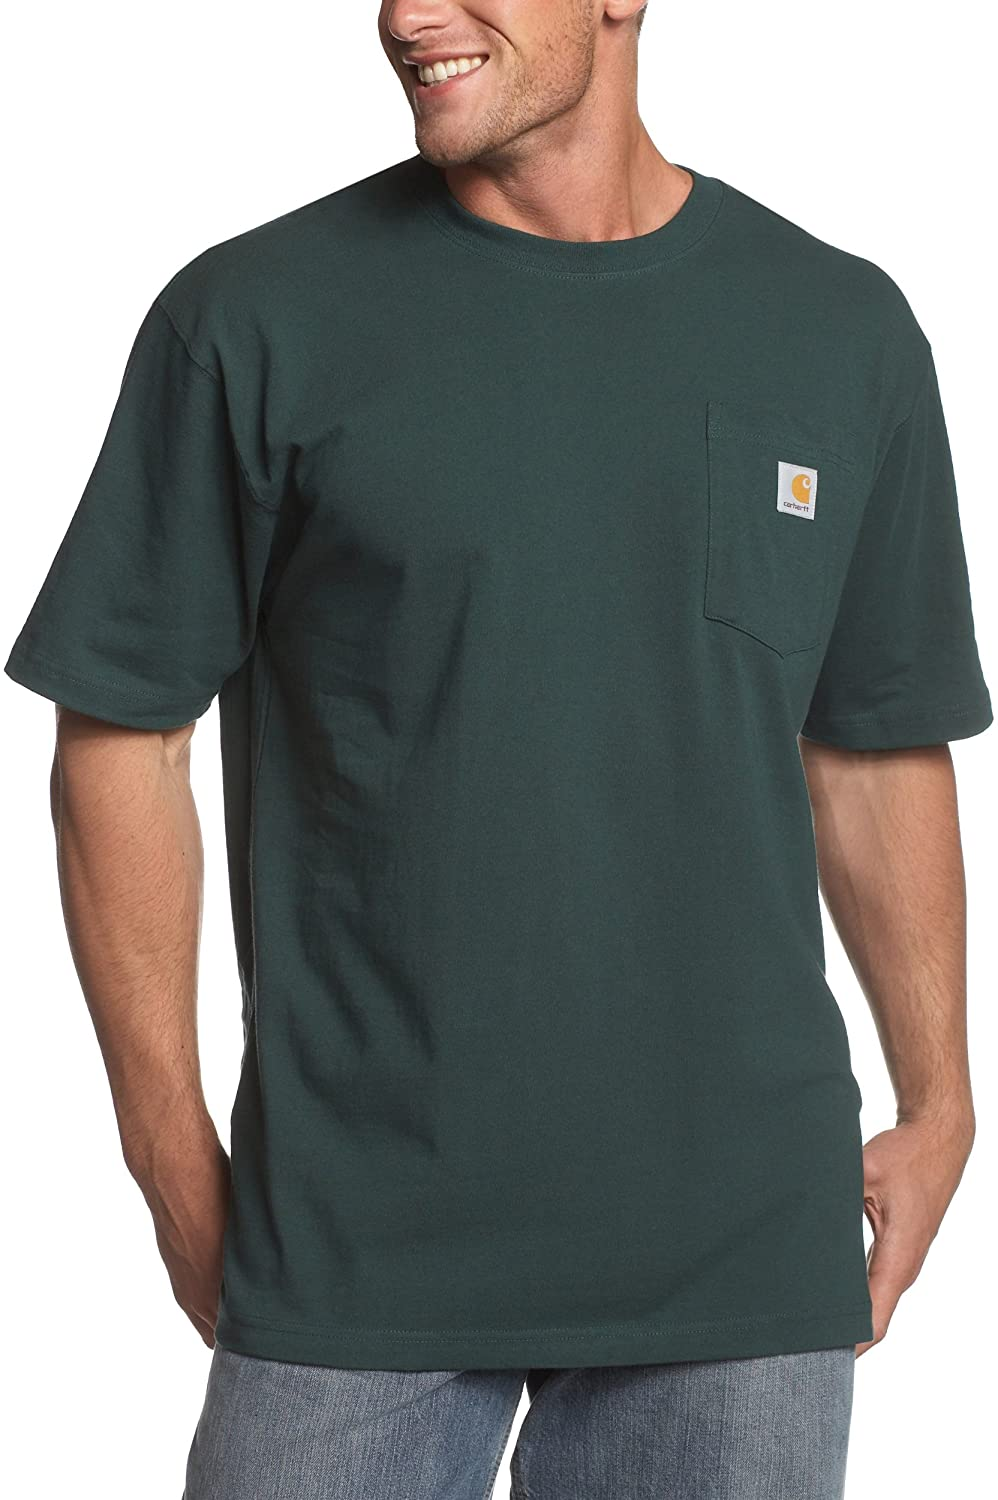 Carhartt Men's Big & Tall Workwear Pocket Short-Sleeve T-Shirt Original Fit K87 Carhartt Sportswear - Mens